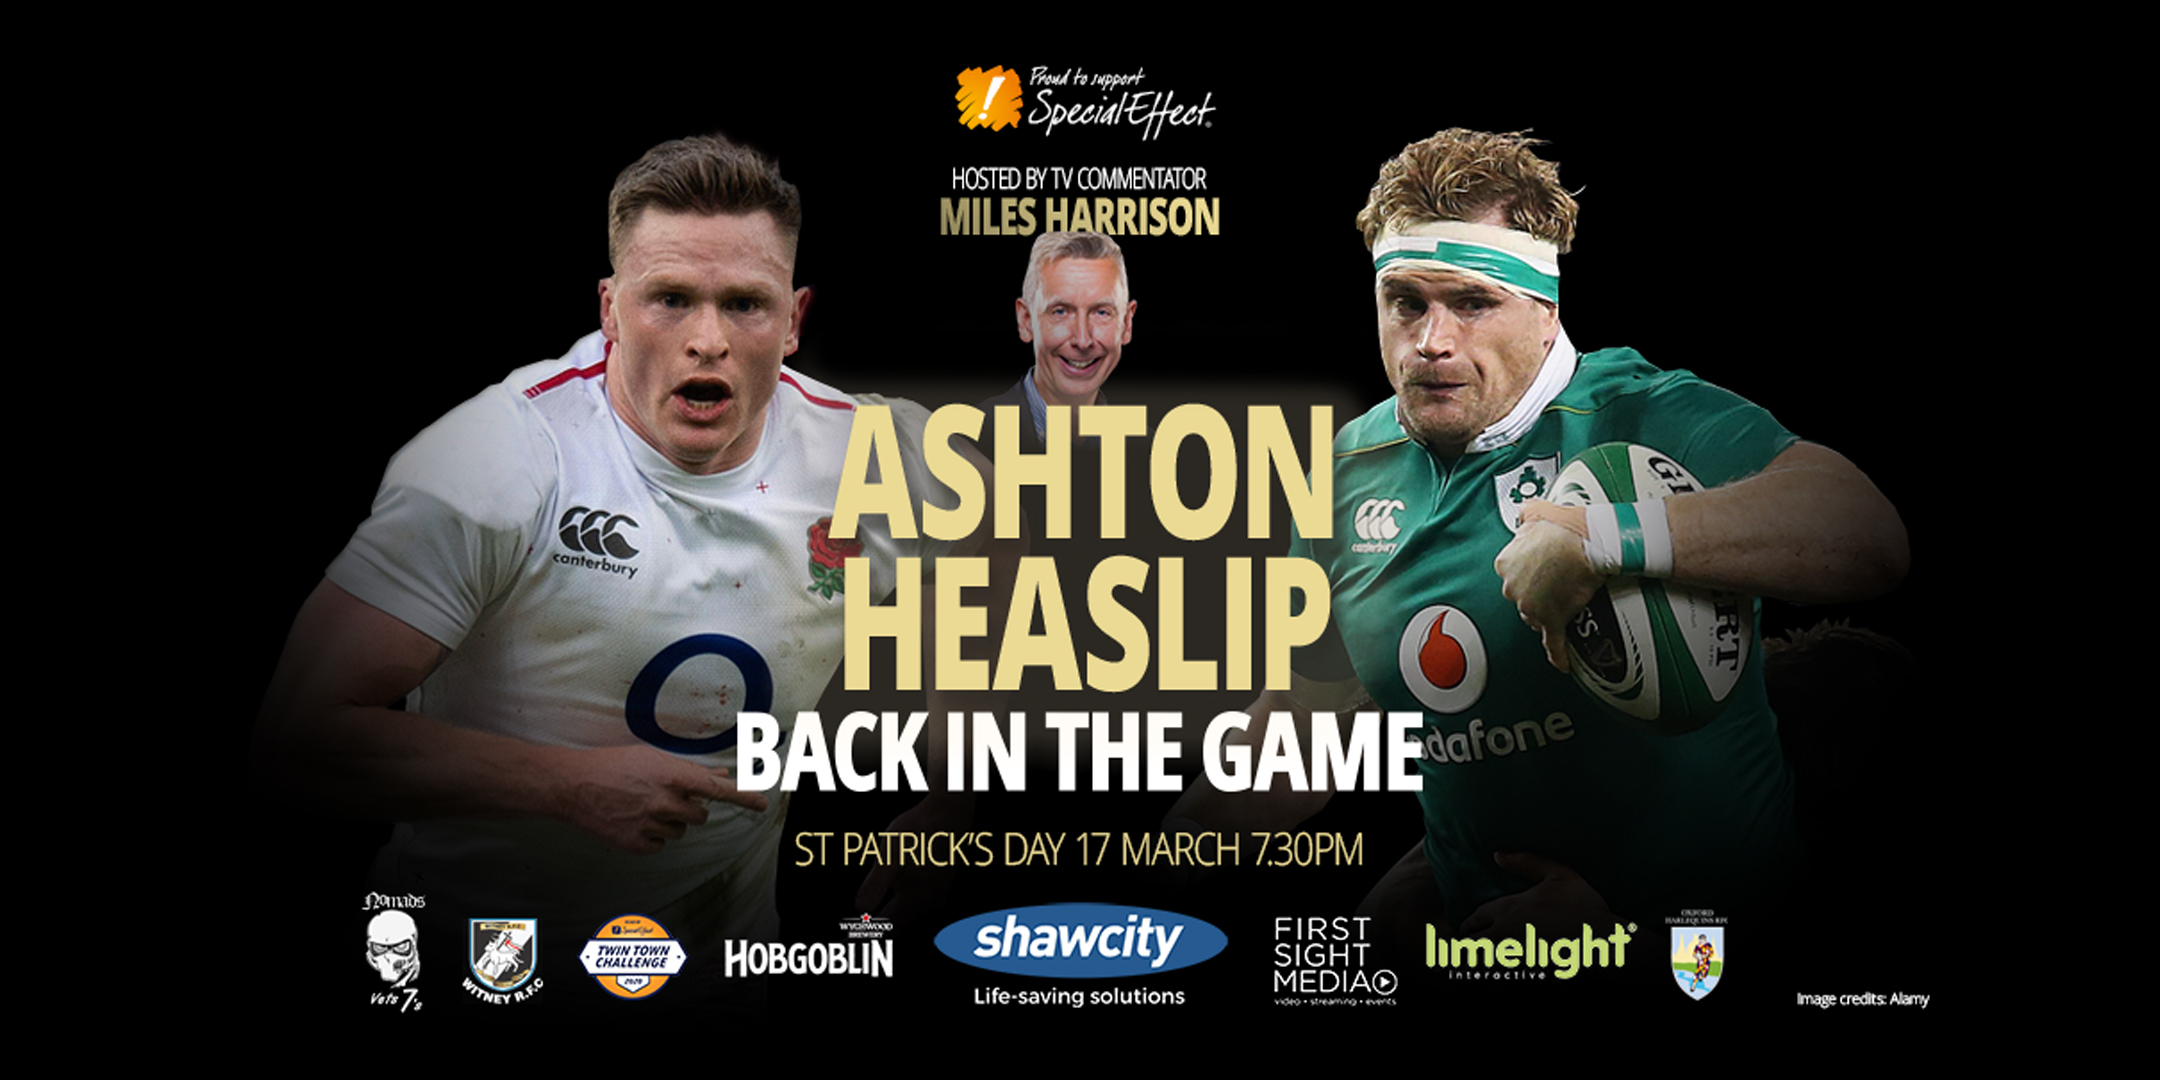 Two rugby players, titles and sponsor names